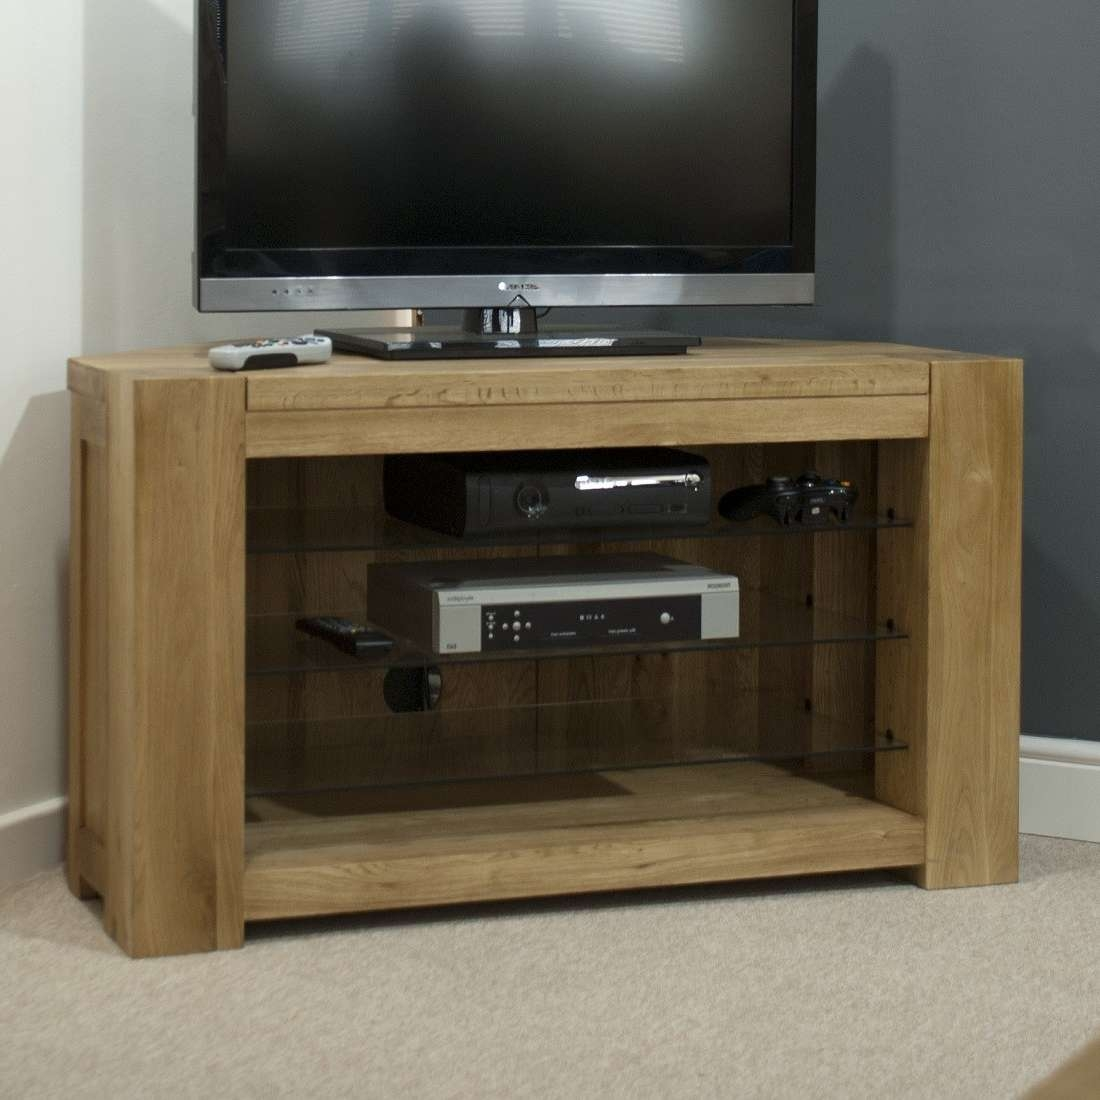 Trend Solid Oak Corner Tv Unit | Oak Furniture Uk Inside Glass And Oak Tv Stands (View 14 of 15)